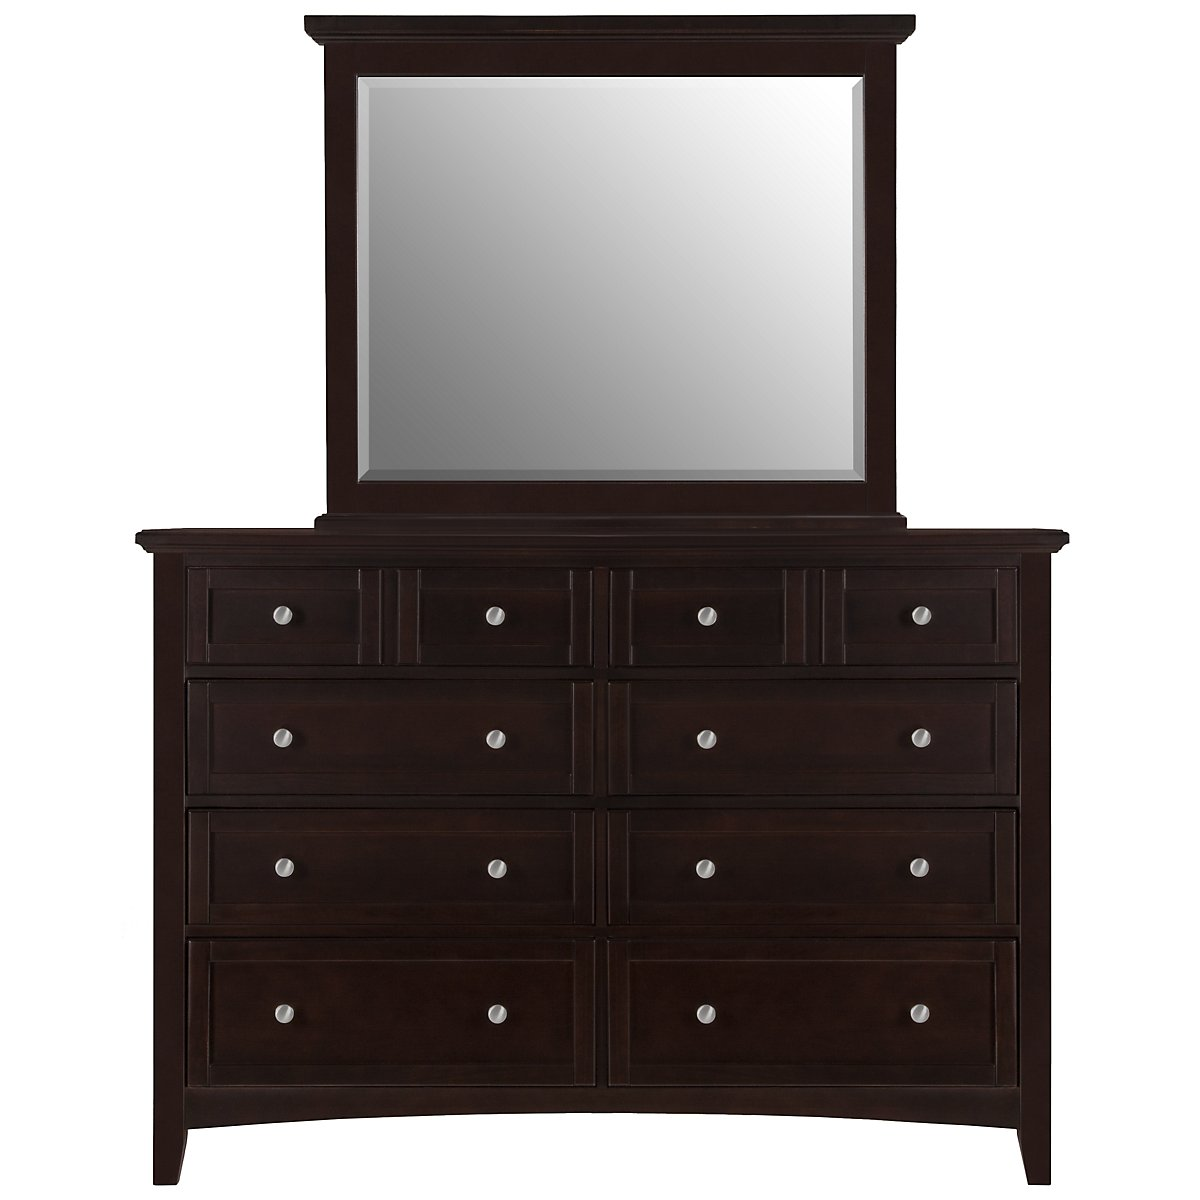 Captiva Dark Tone Large Dresser & Mirror